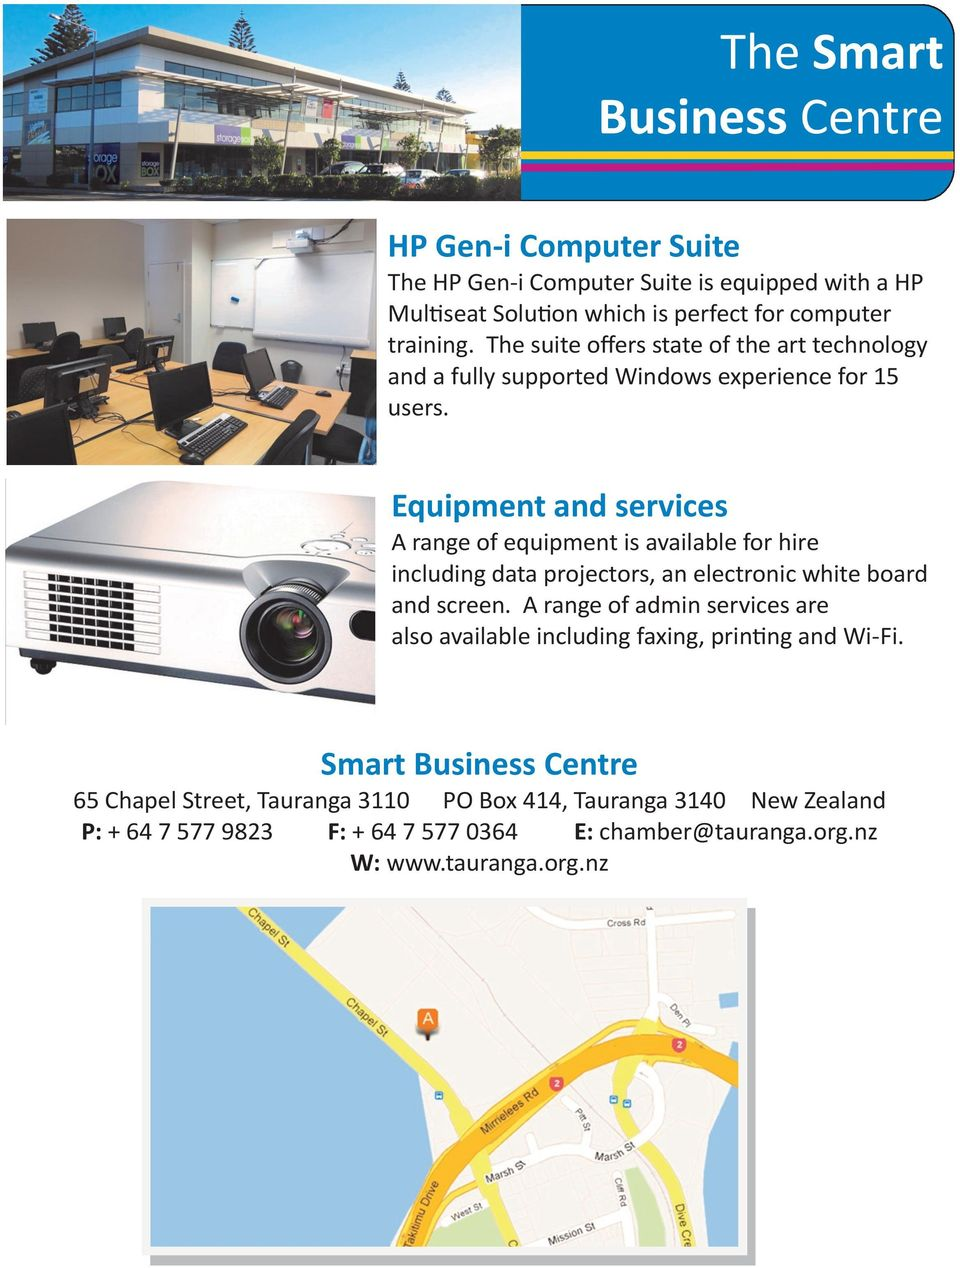 Equipment and services A range of equipment is available for hire including data projectors, an electronic white board and screen.